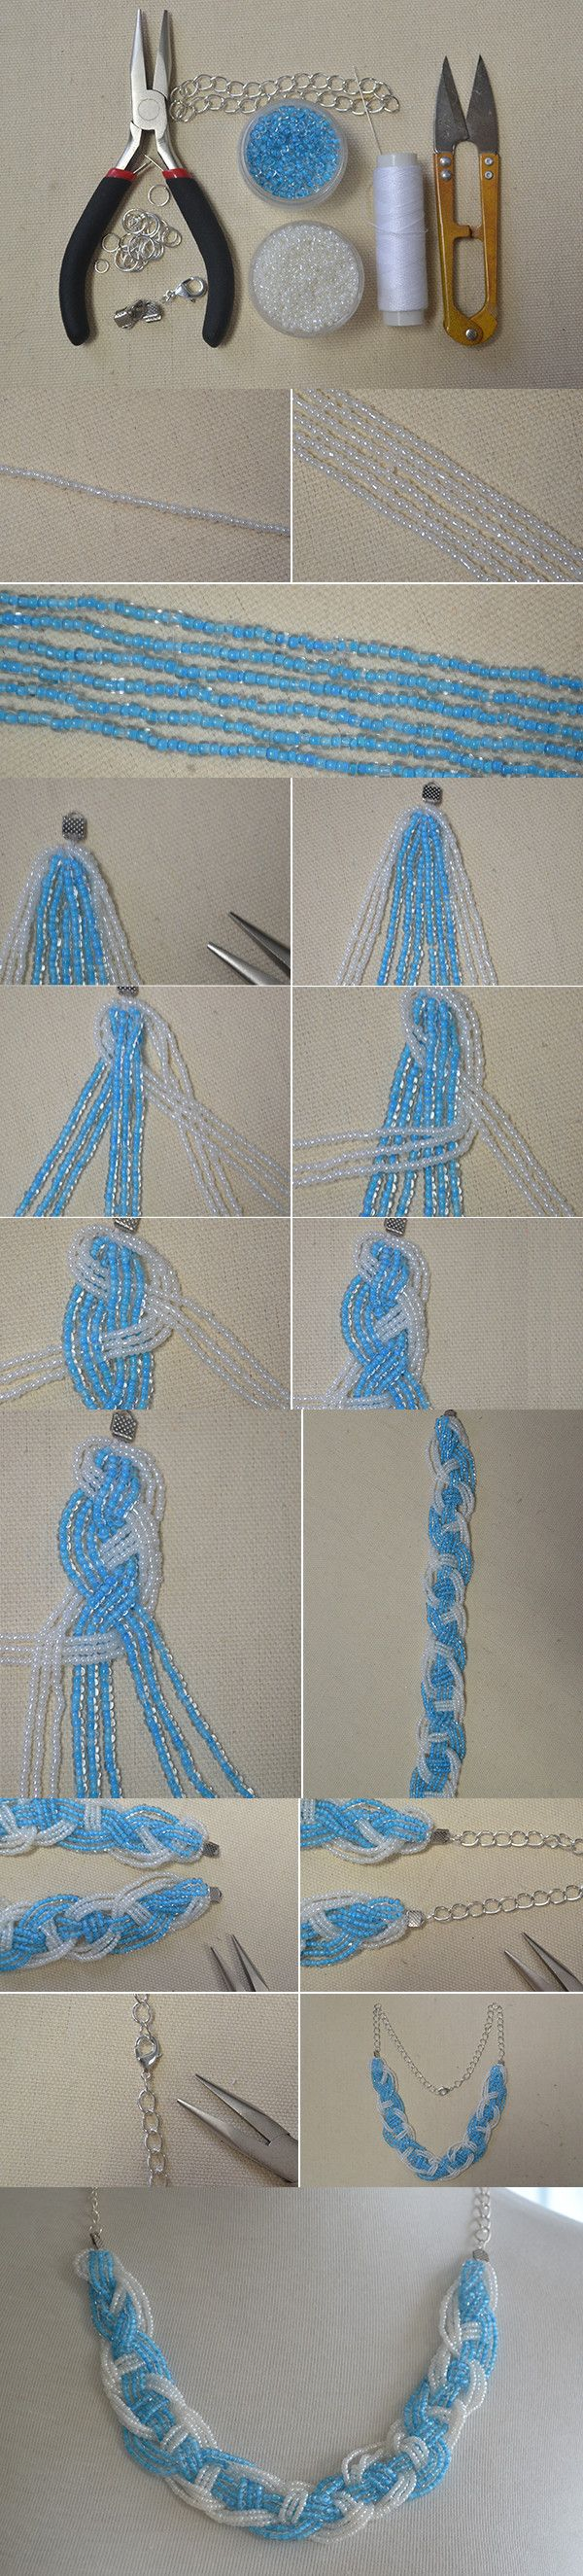 Tutorial on How to Make a Blue Braided Seed Bead Necklace at Home from…